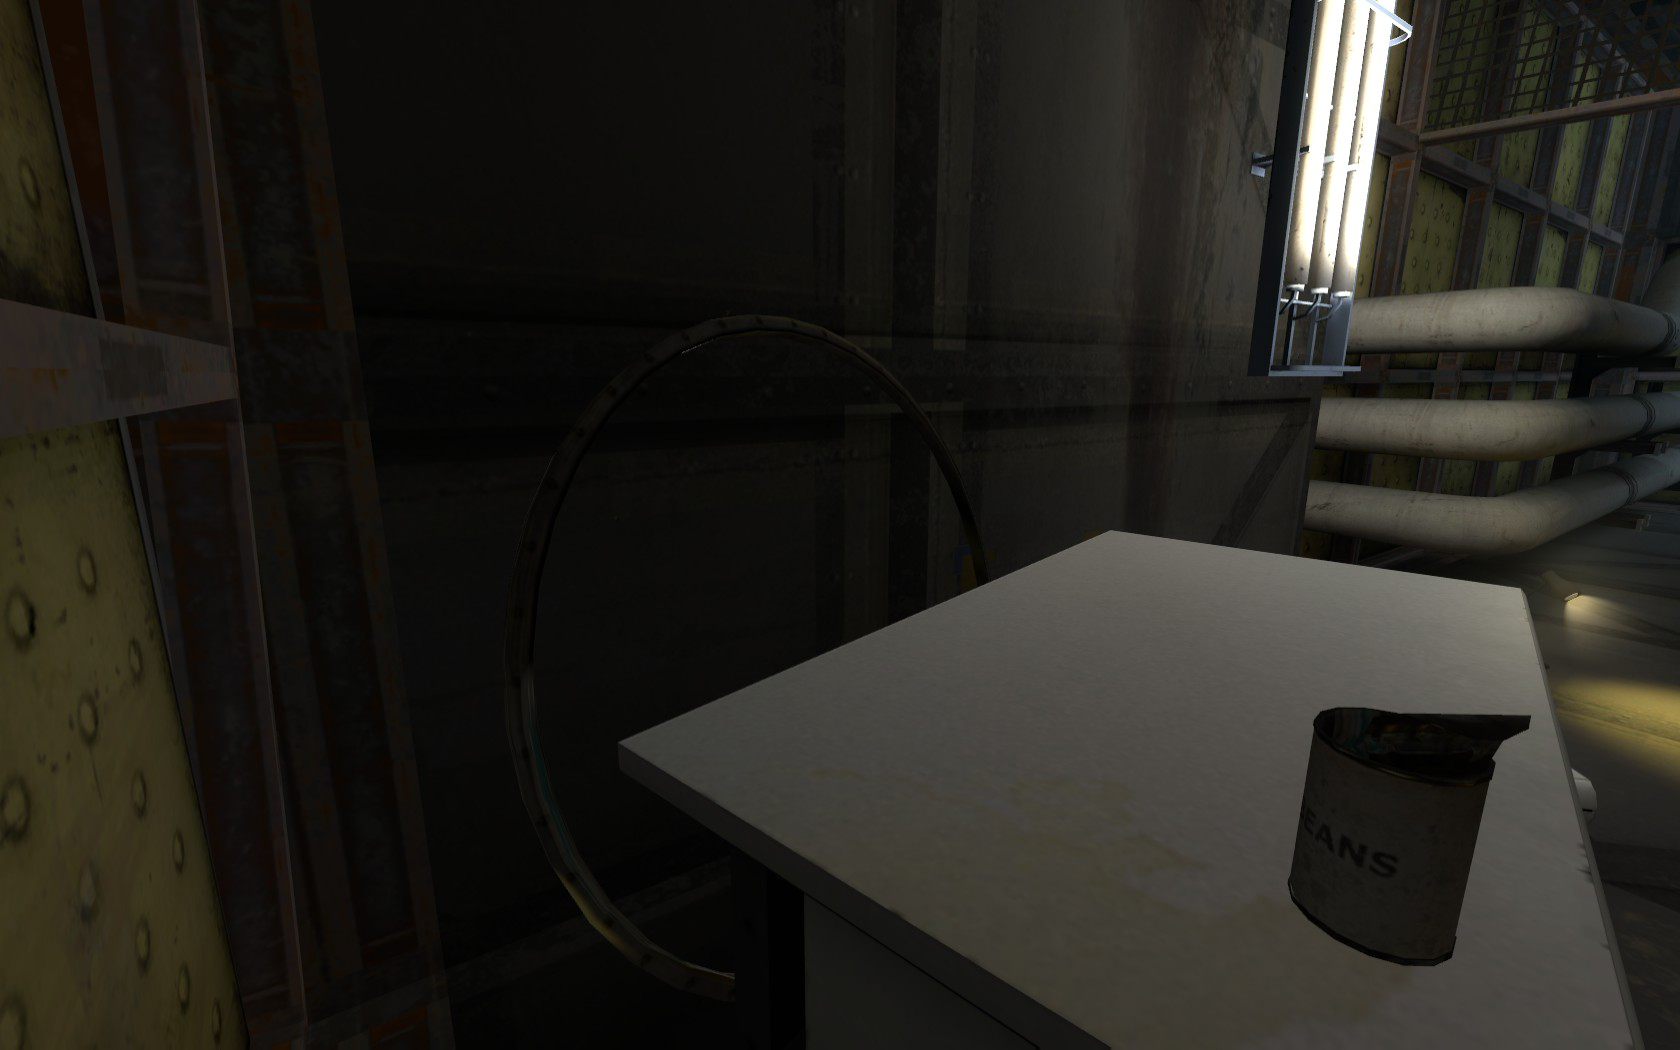 Portal_2_Chapter_2_Test_Chamber_6_Hoopy_the_Hoop.png